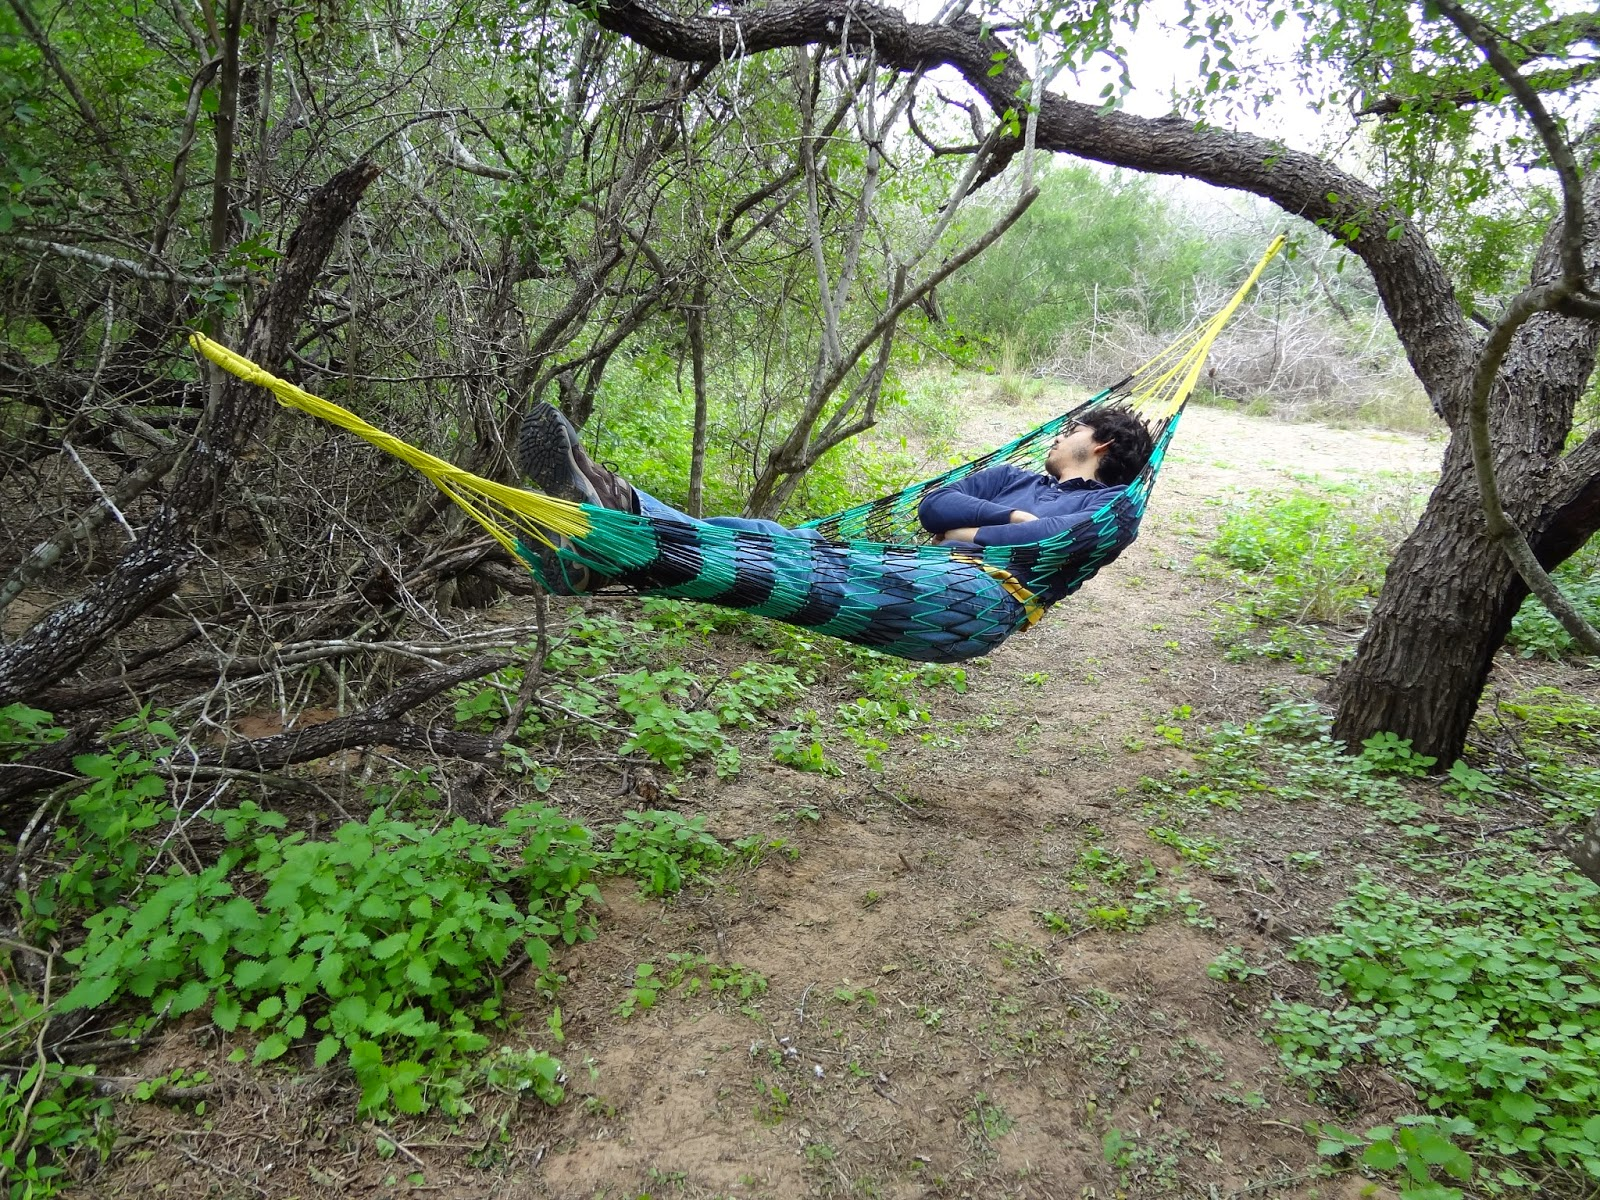 Medium image of a cool weather hammock from mexico